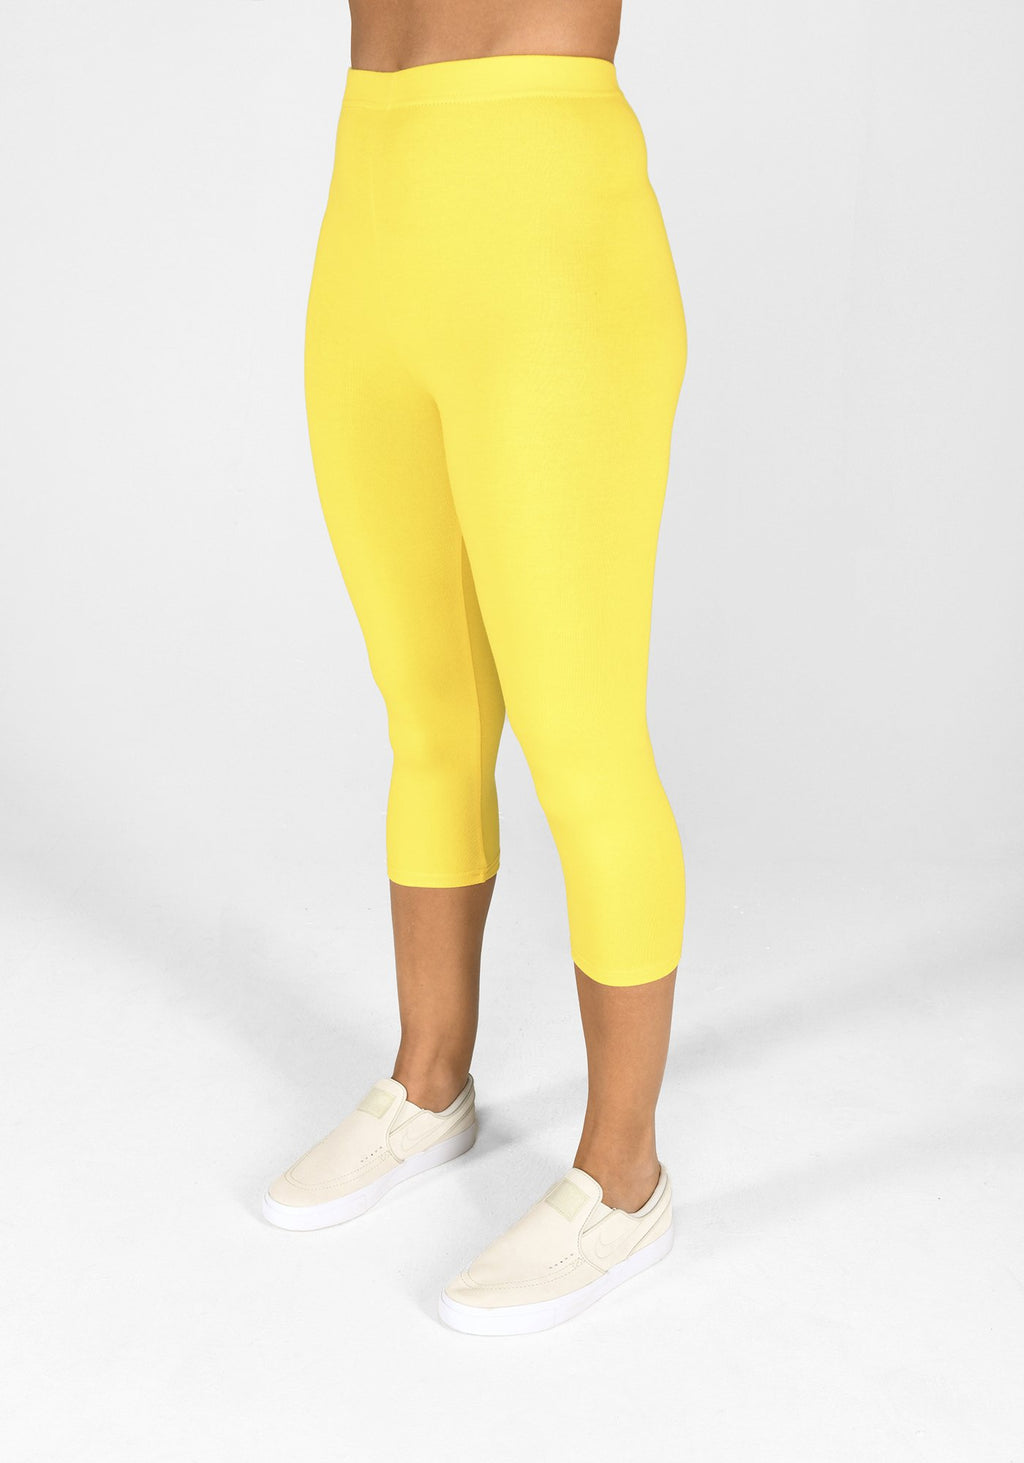 buttercup yellow cropped leggings 1